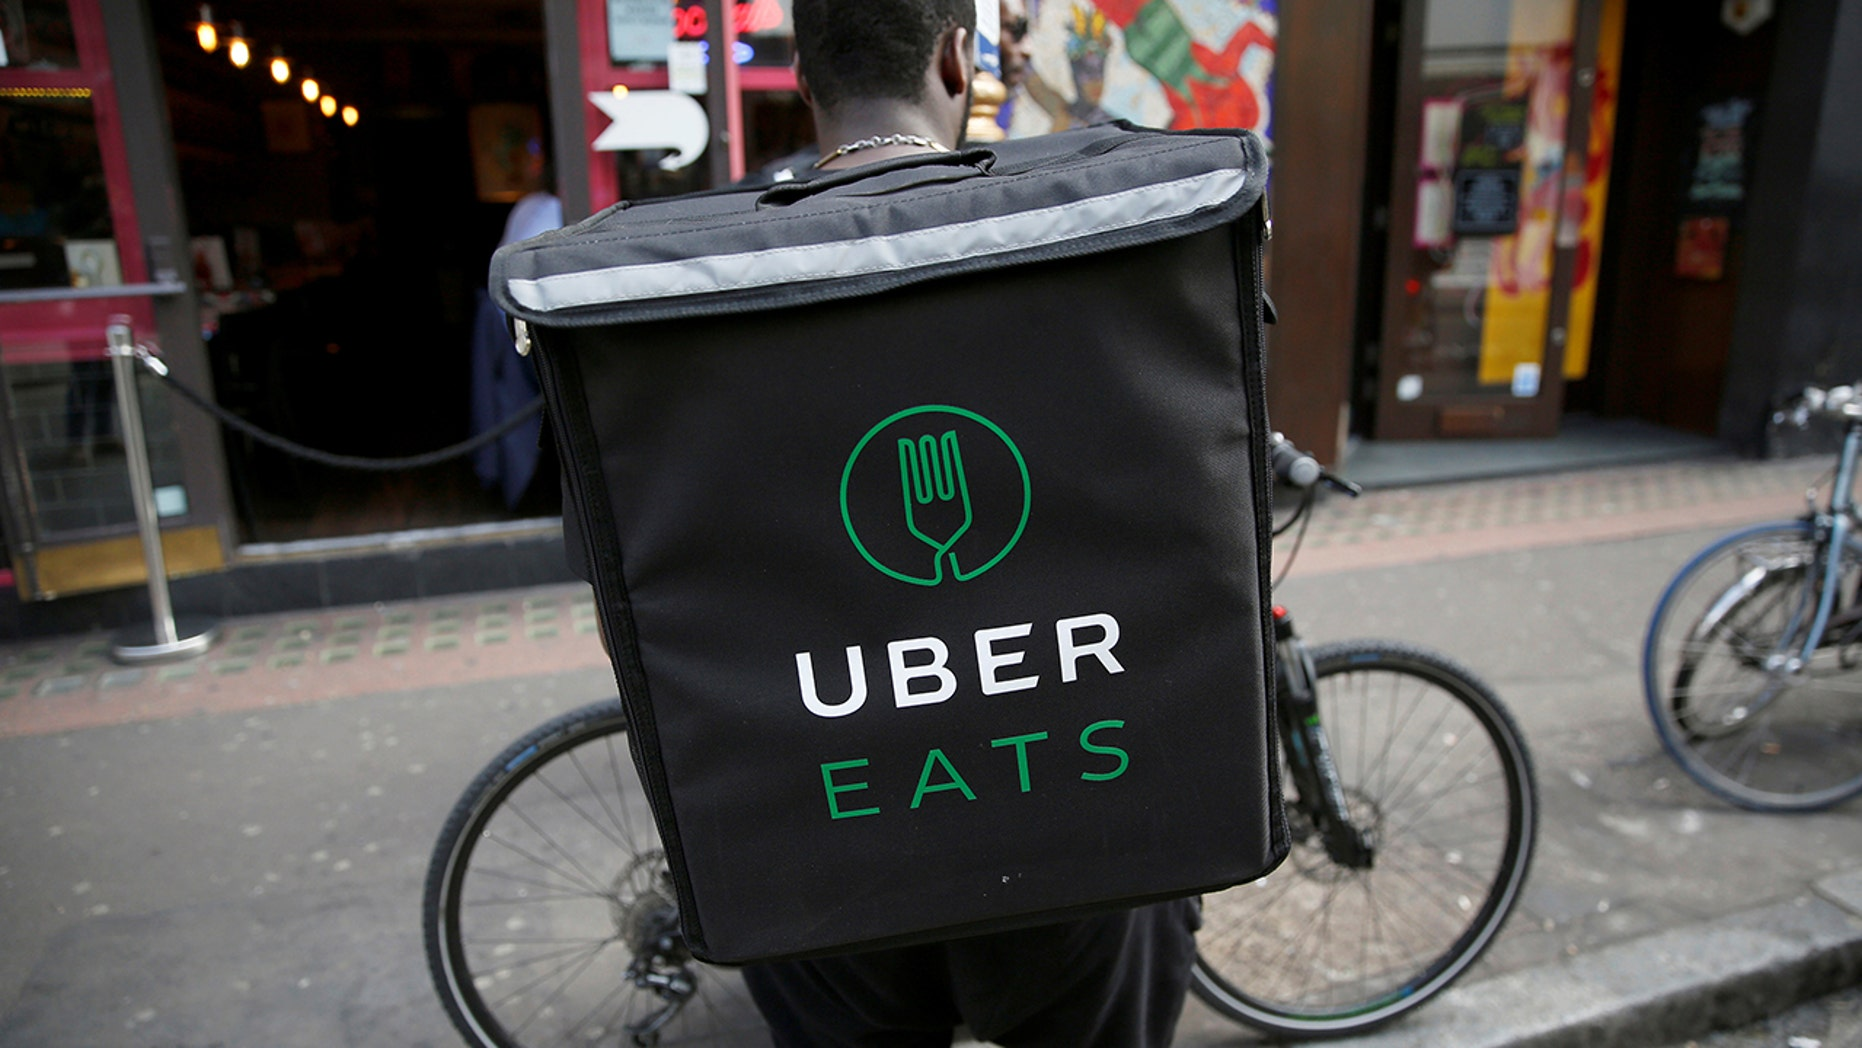 UberEats is making a profit, but Uber is not